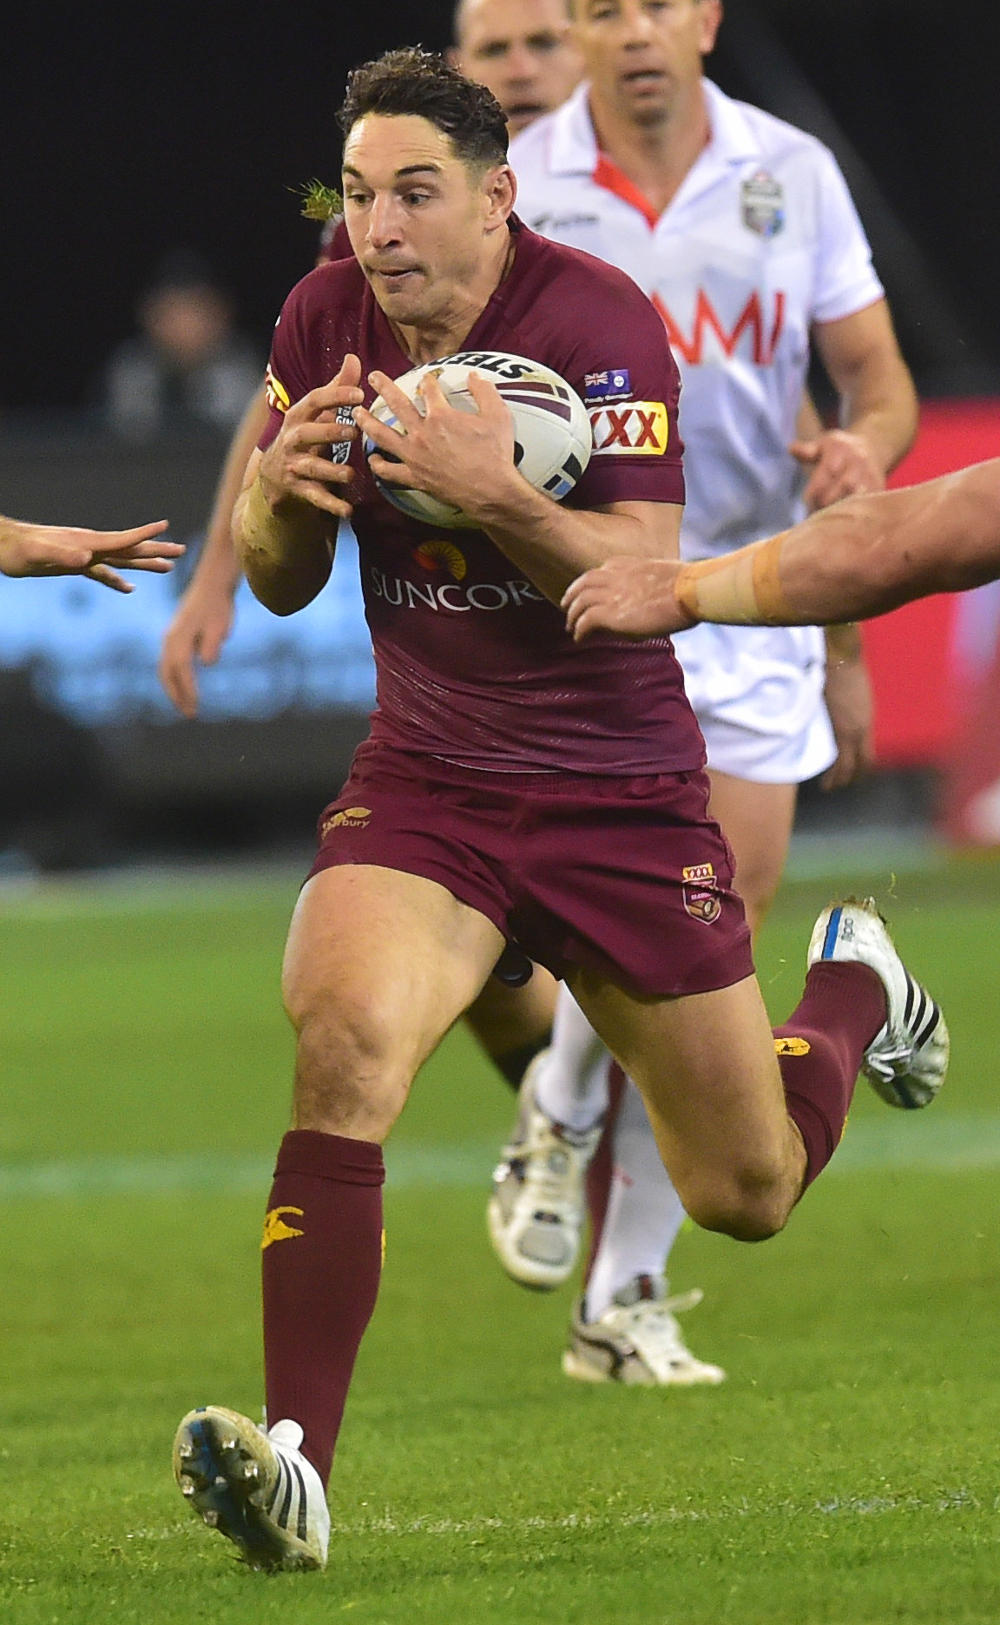 Billy Slater runs the ball for the Maroons in State of Origin